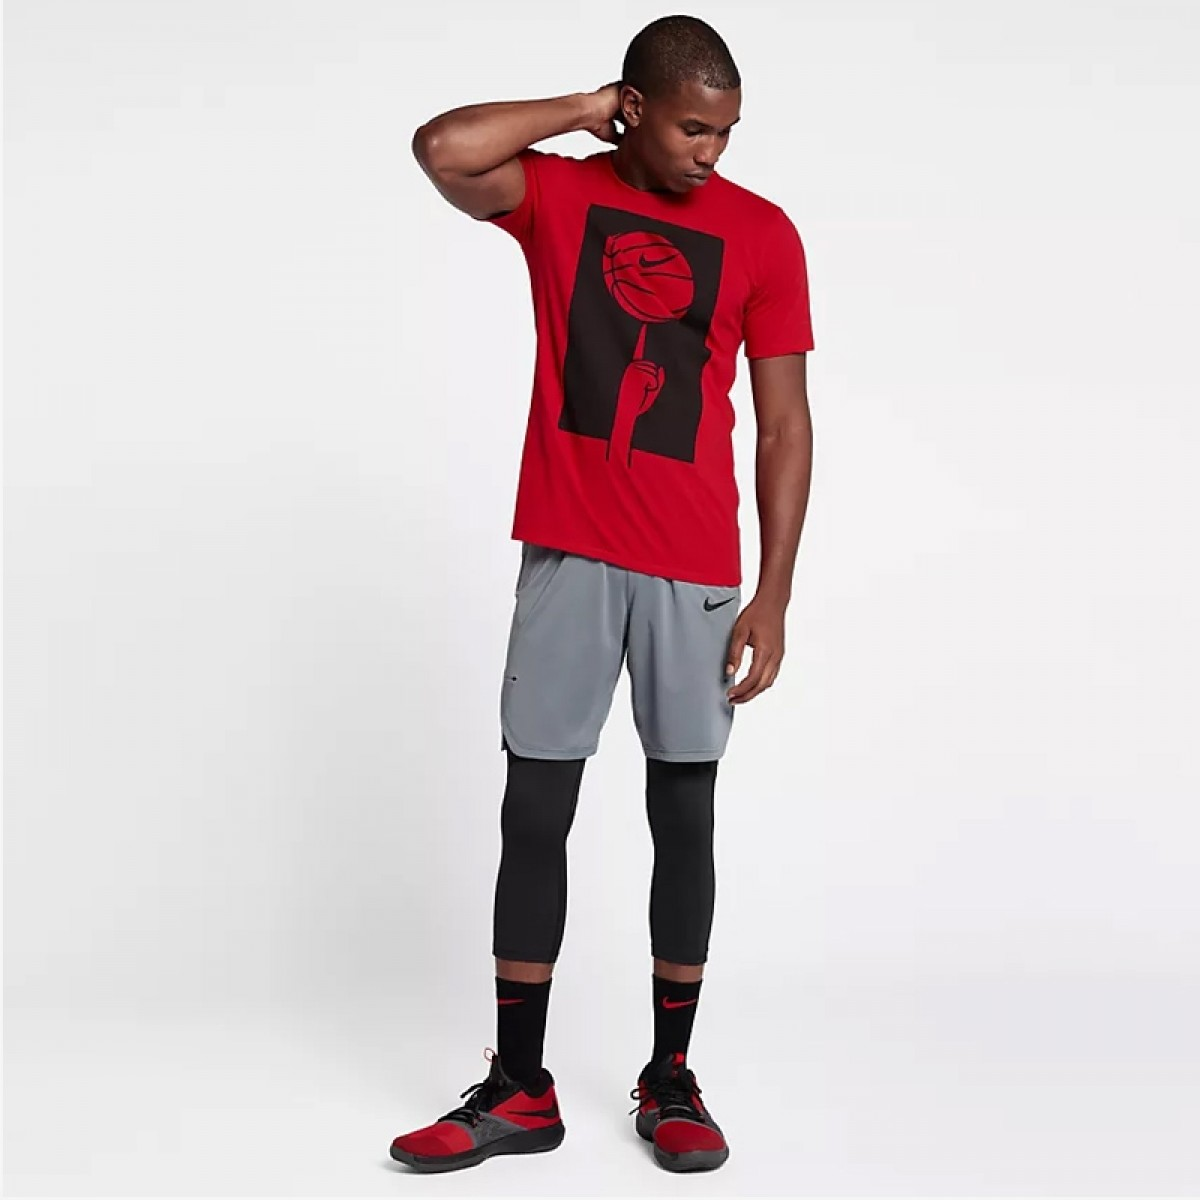 Nike Dry Basketball T-Shirt 'Red' 882194-657